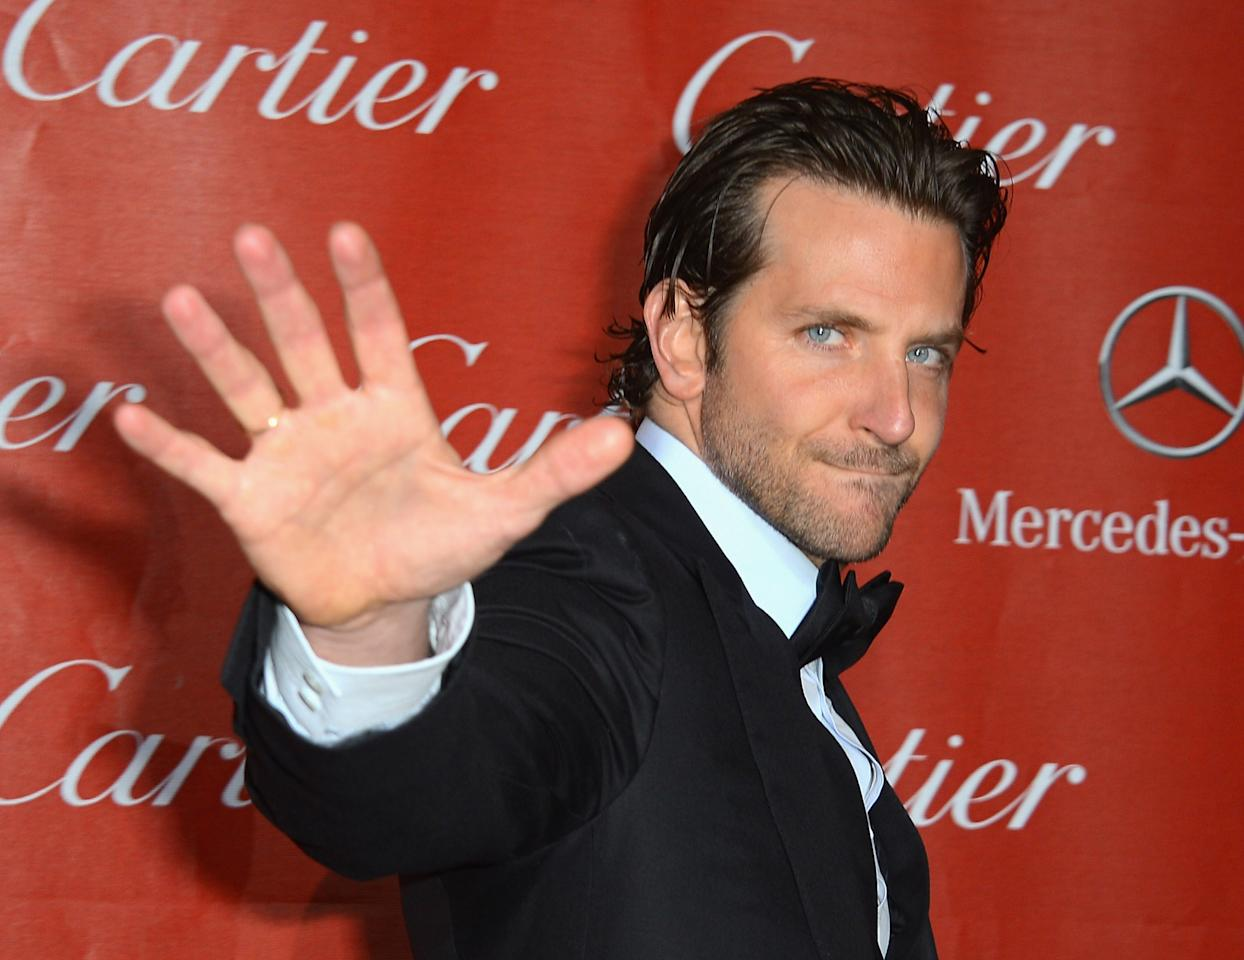 PALM SPRINGS, CA - JANUARY 05:  Actor Bradley Cooper arrives at The 24th Annual Palm Springs International Film Festival Awards Gala on January 5, 2013 in Palm Springs, California.  (Photo by Frazer Harrison/Getty Images)